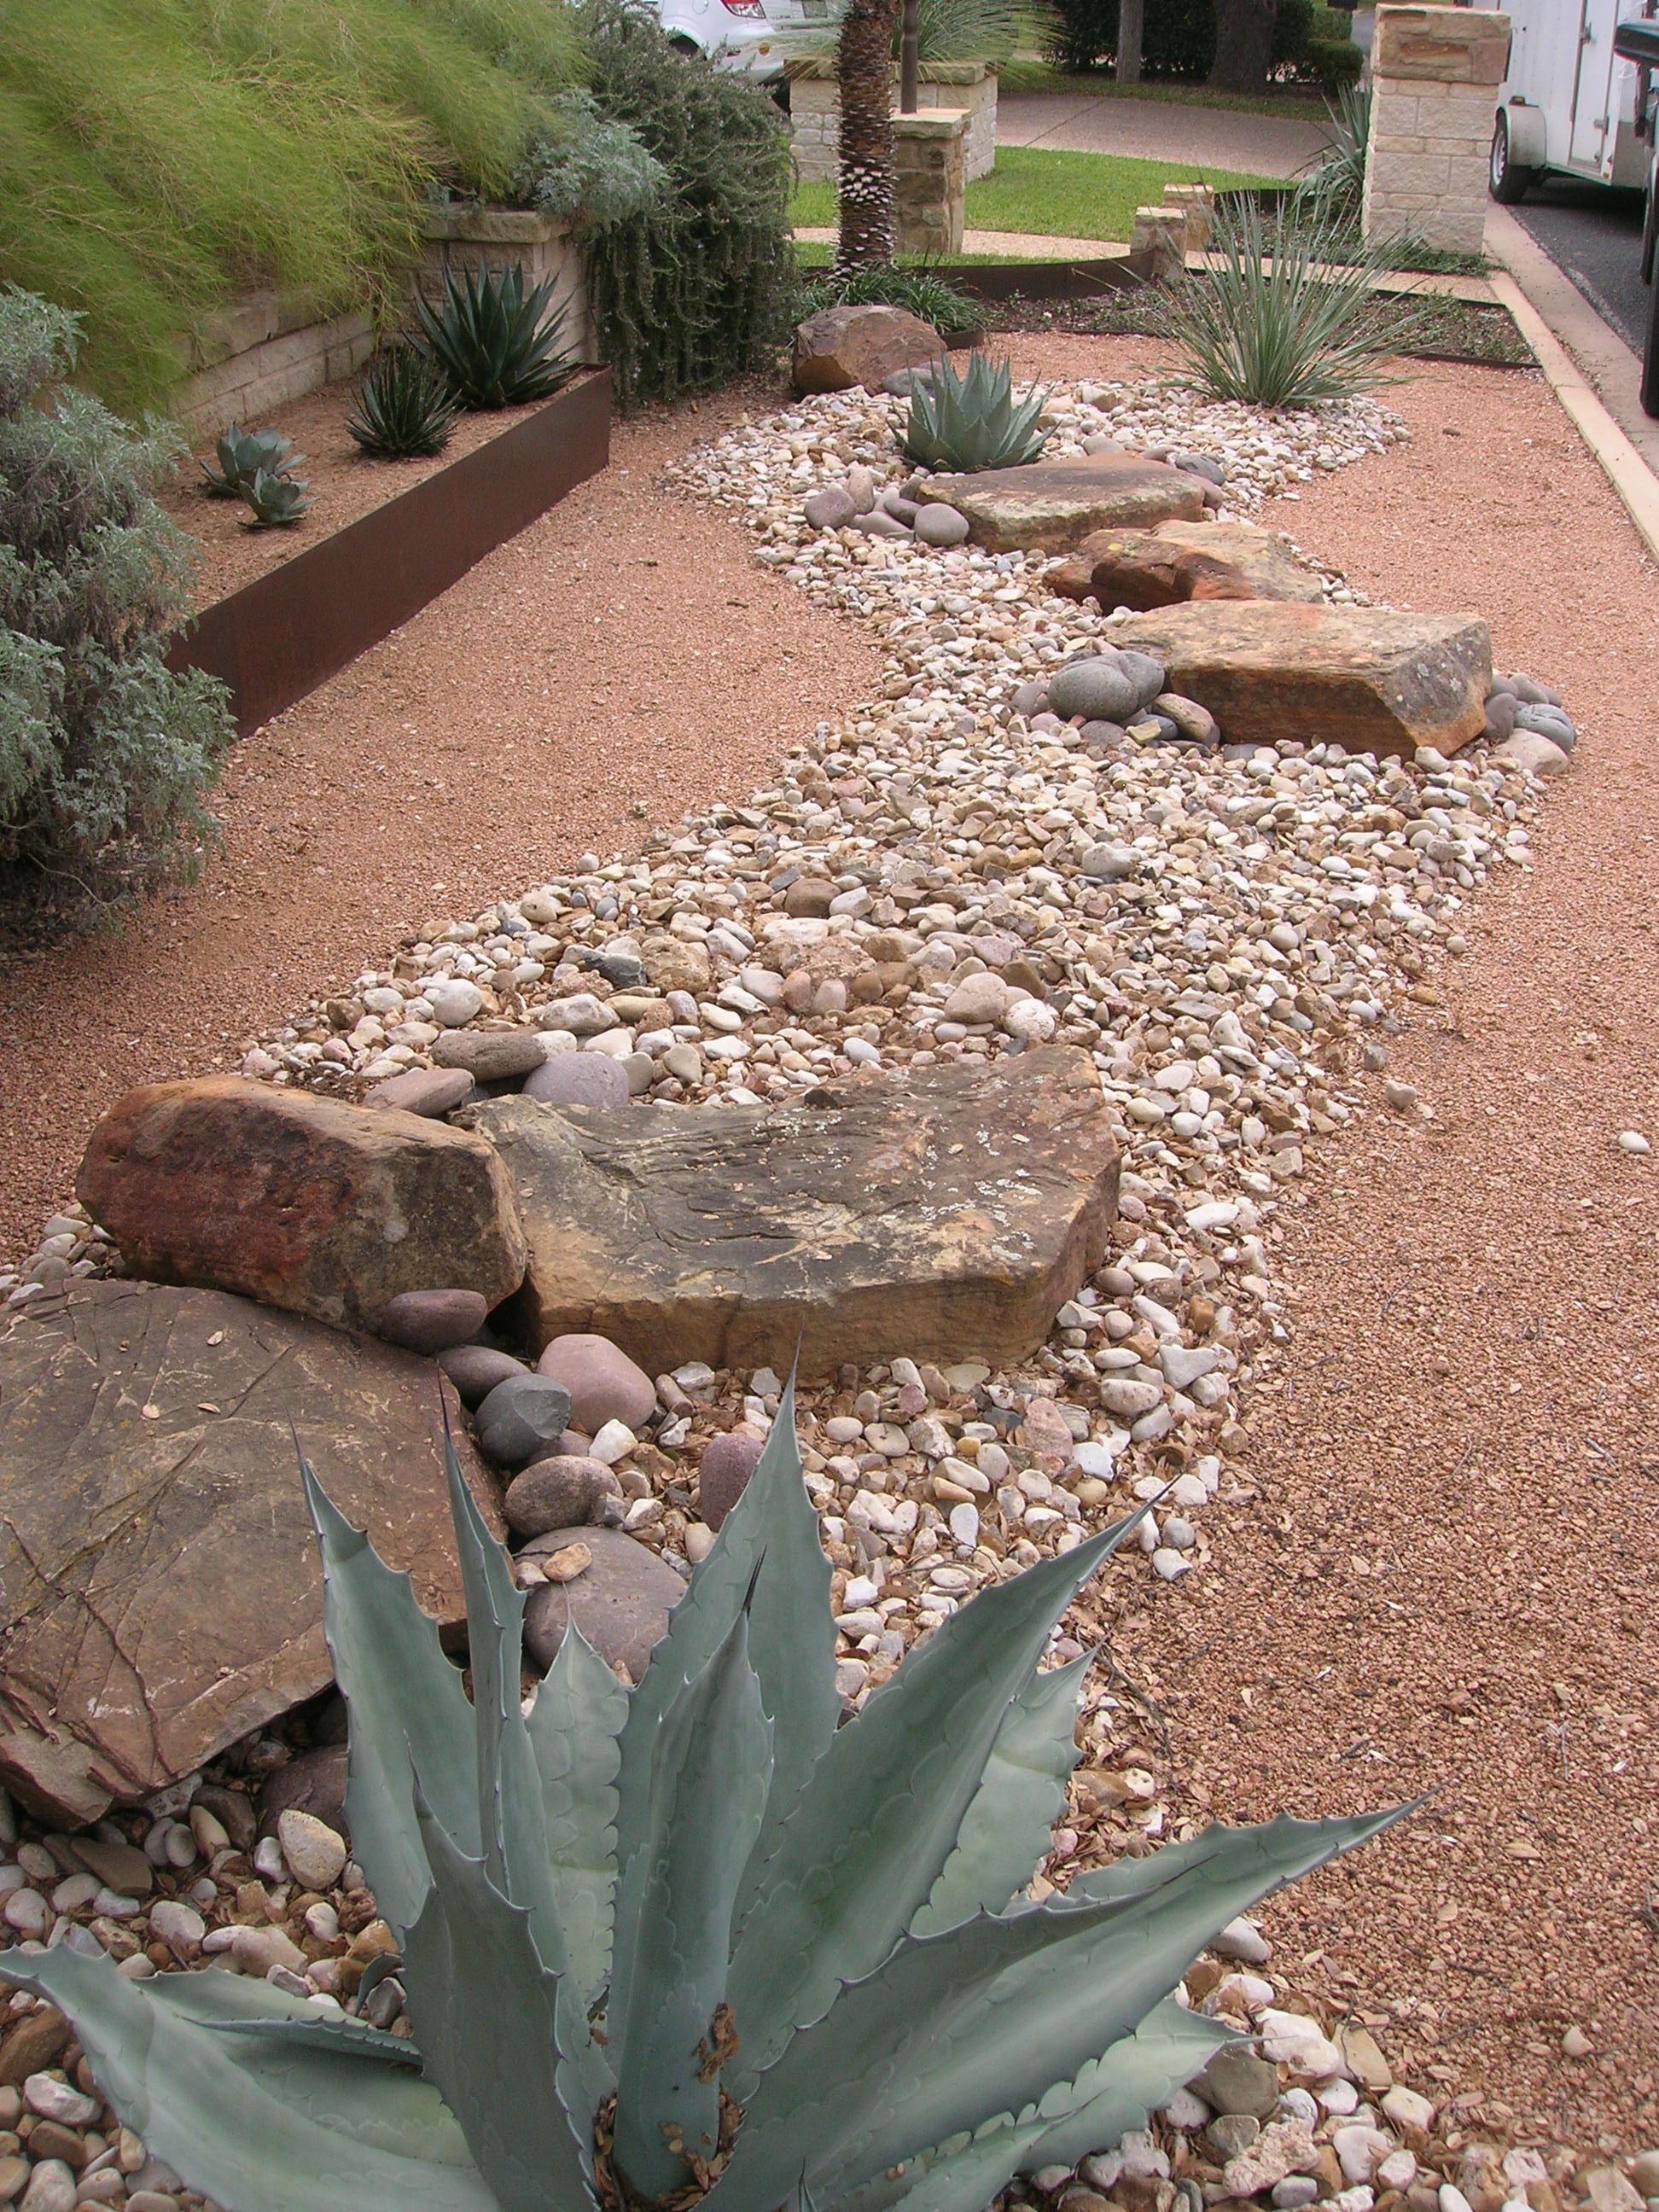 Landscaping Pictures Of Texas Xeriscape Gardens And Much More Here on texas rock home designs, texas landscape pool design ideas, texas rock garden landscape, texas rock patio designs, texas native plant garden designs,